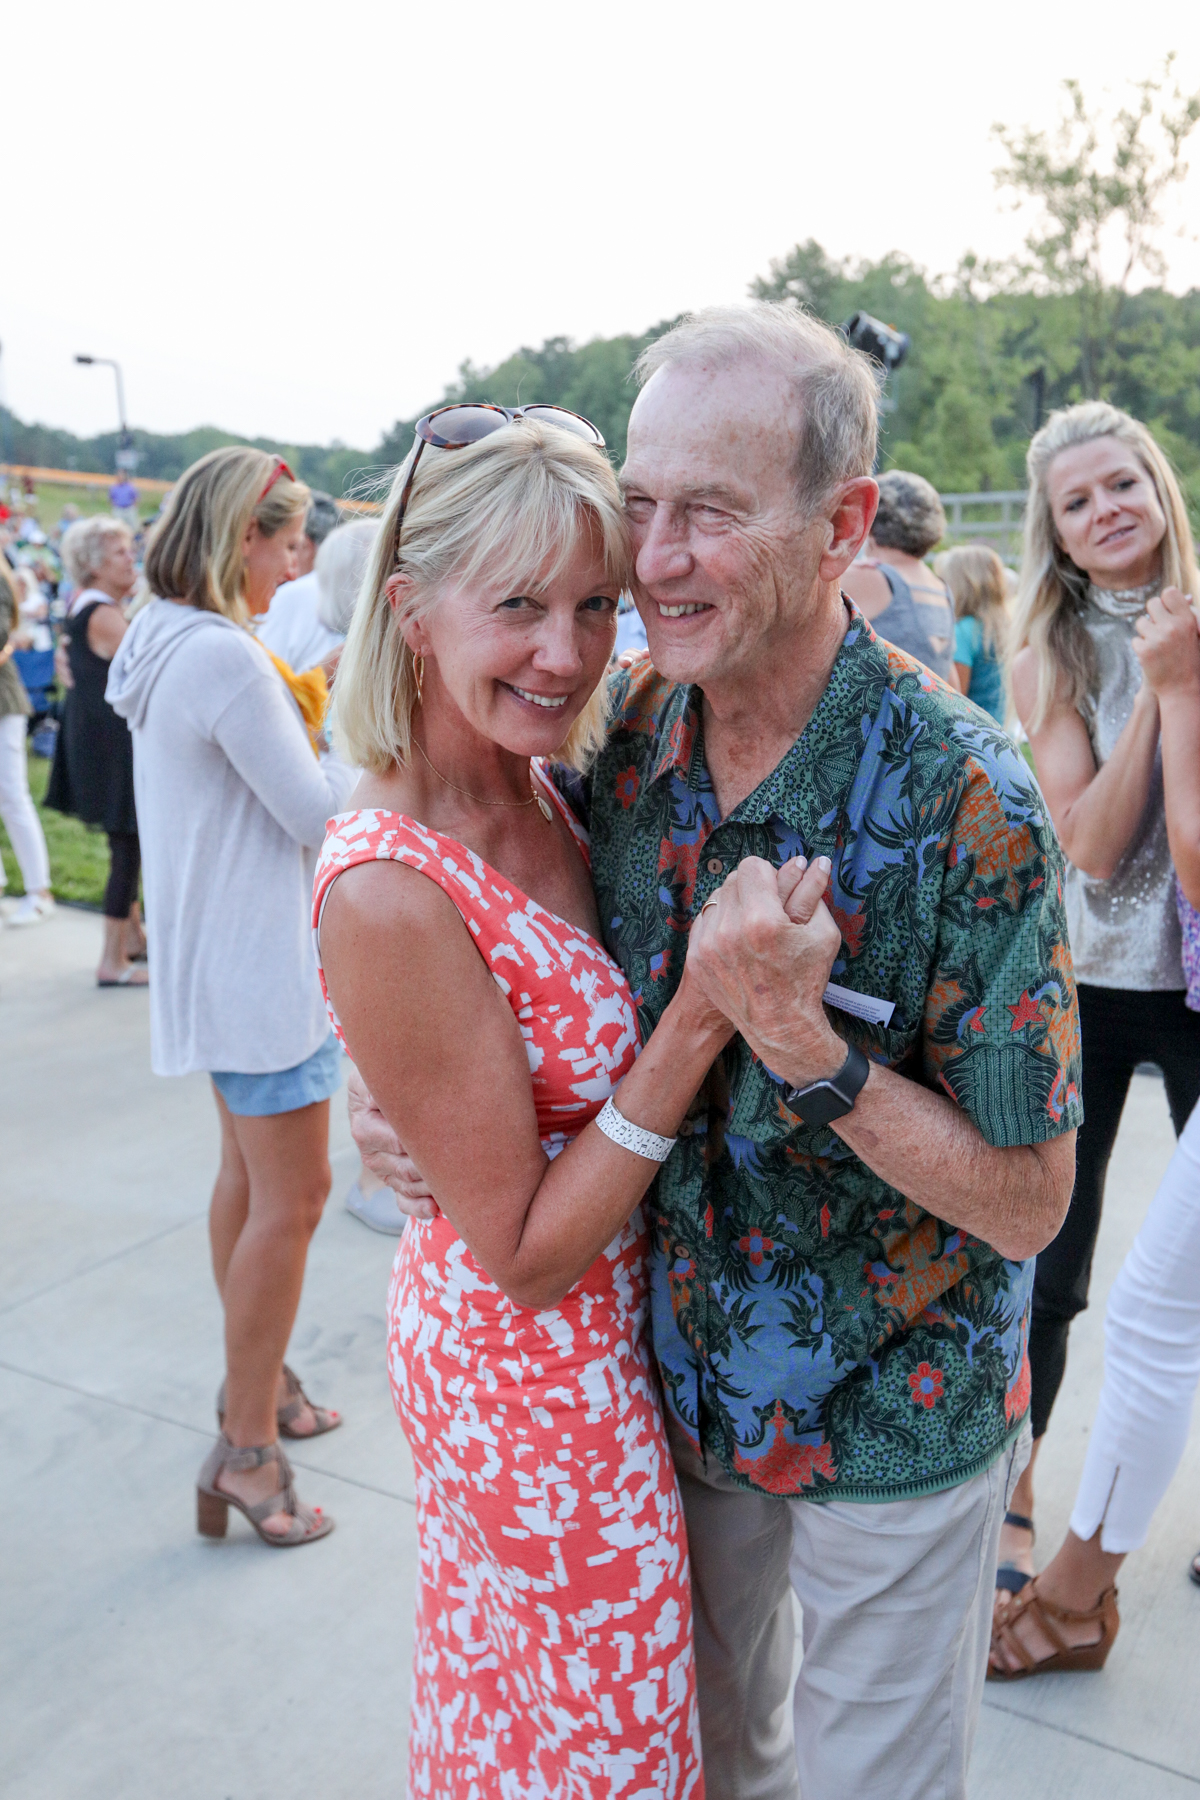 People relaxed and danced as they listened to music at Picnic Pops at the Cannonsburg Ski Area. (July 25, 2019)